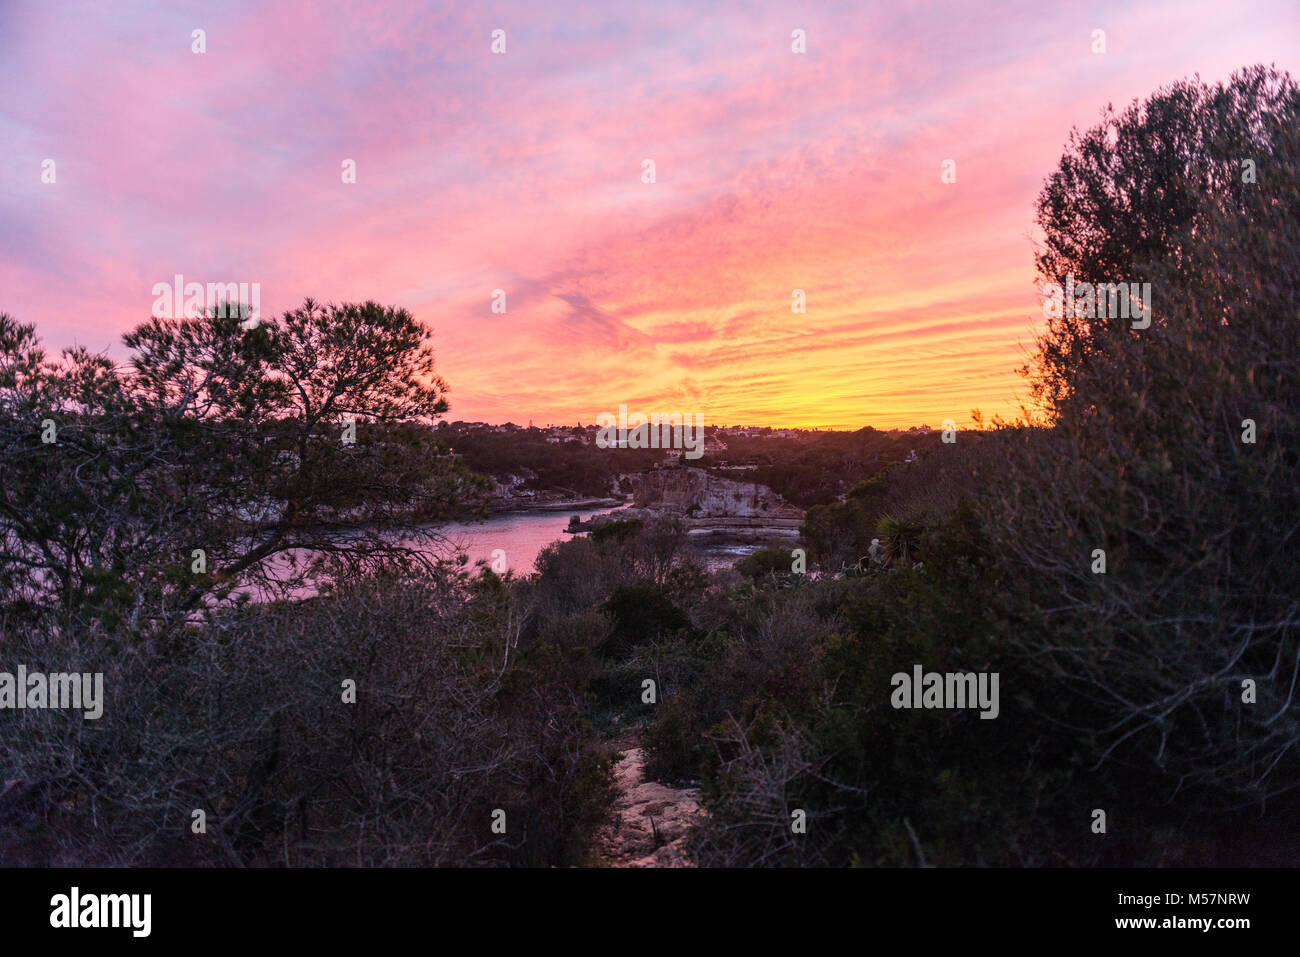 View of a colorful sunset over Cala Llombards in Mallorca, Spain. - Stock Image